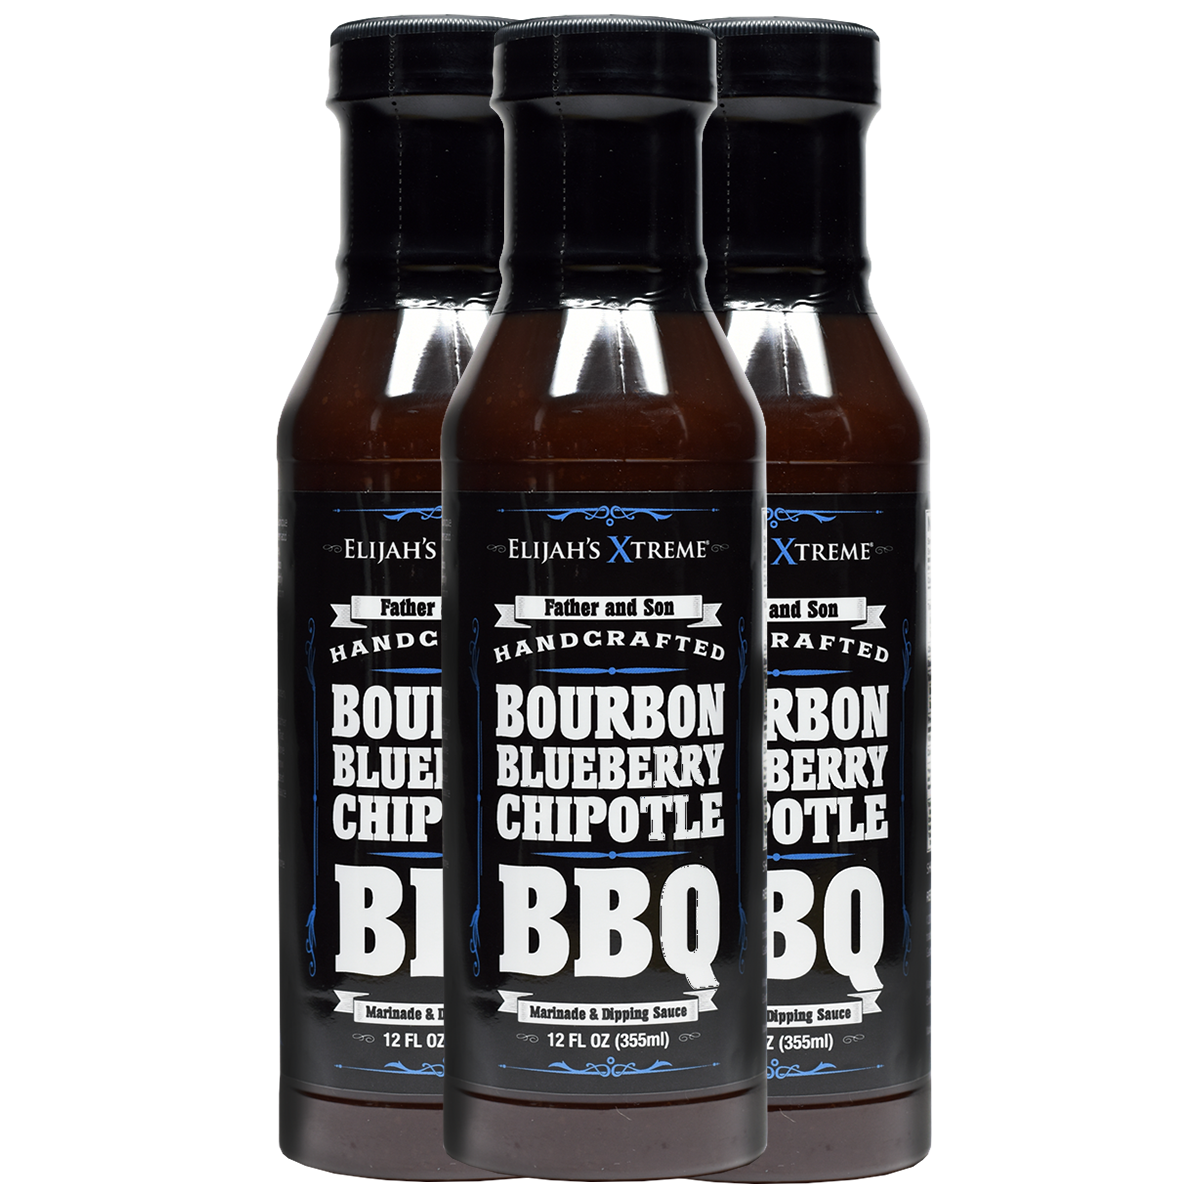 BOURBON INFUSED BLUEBERRY CHIPOTLE BBQ